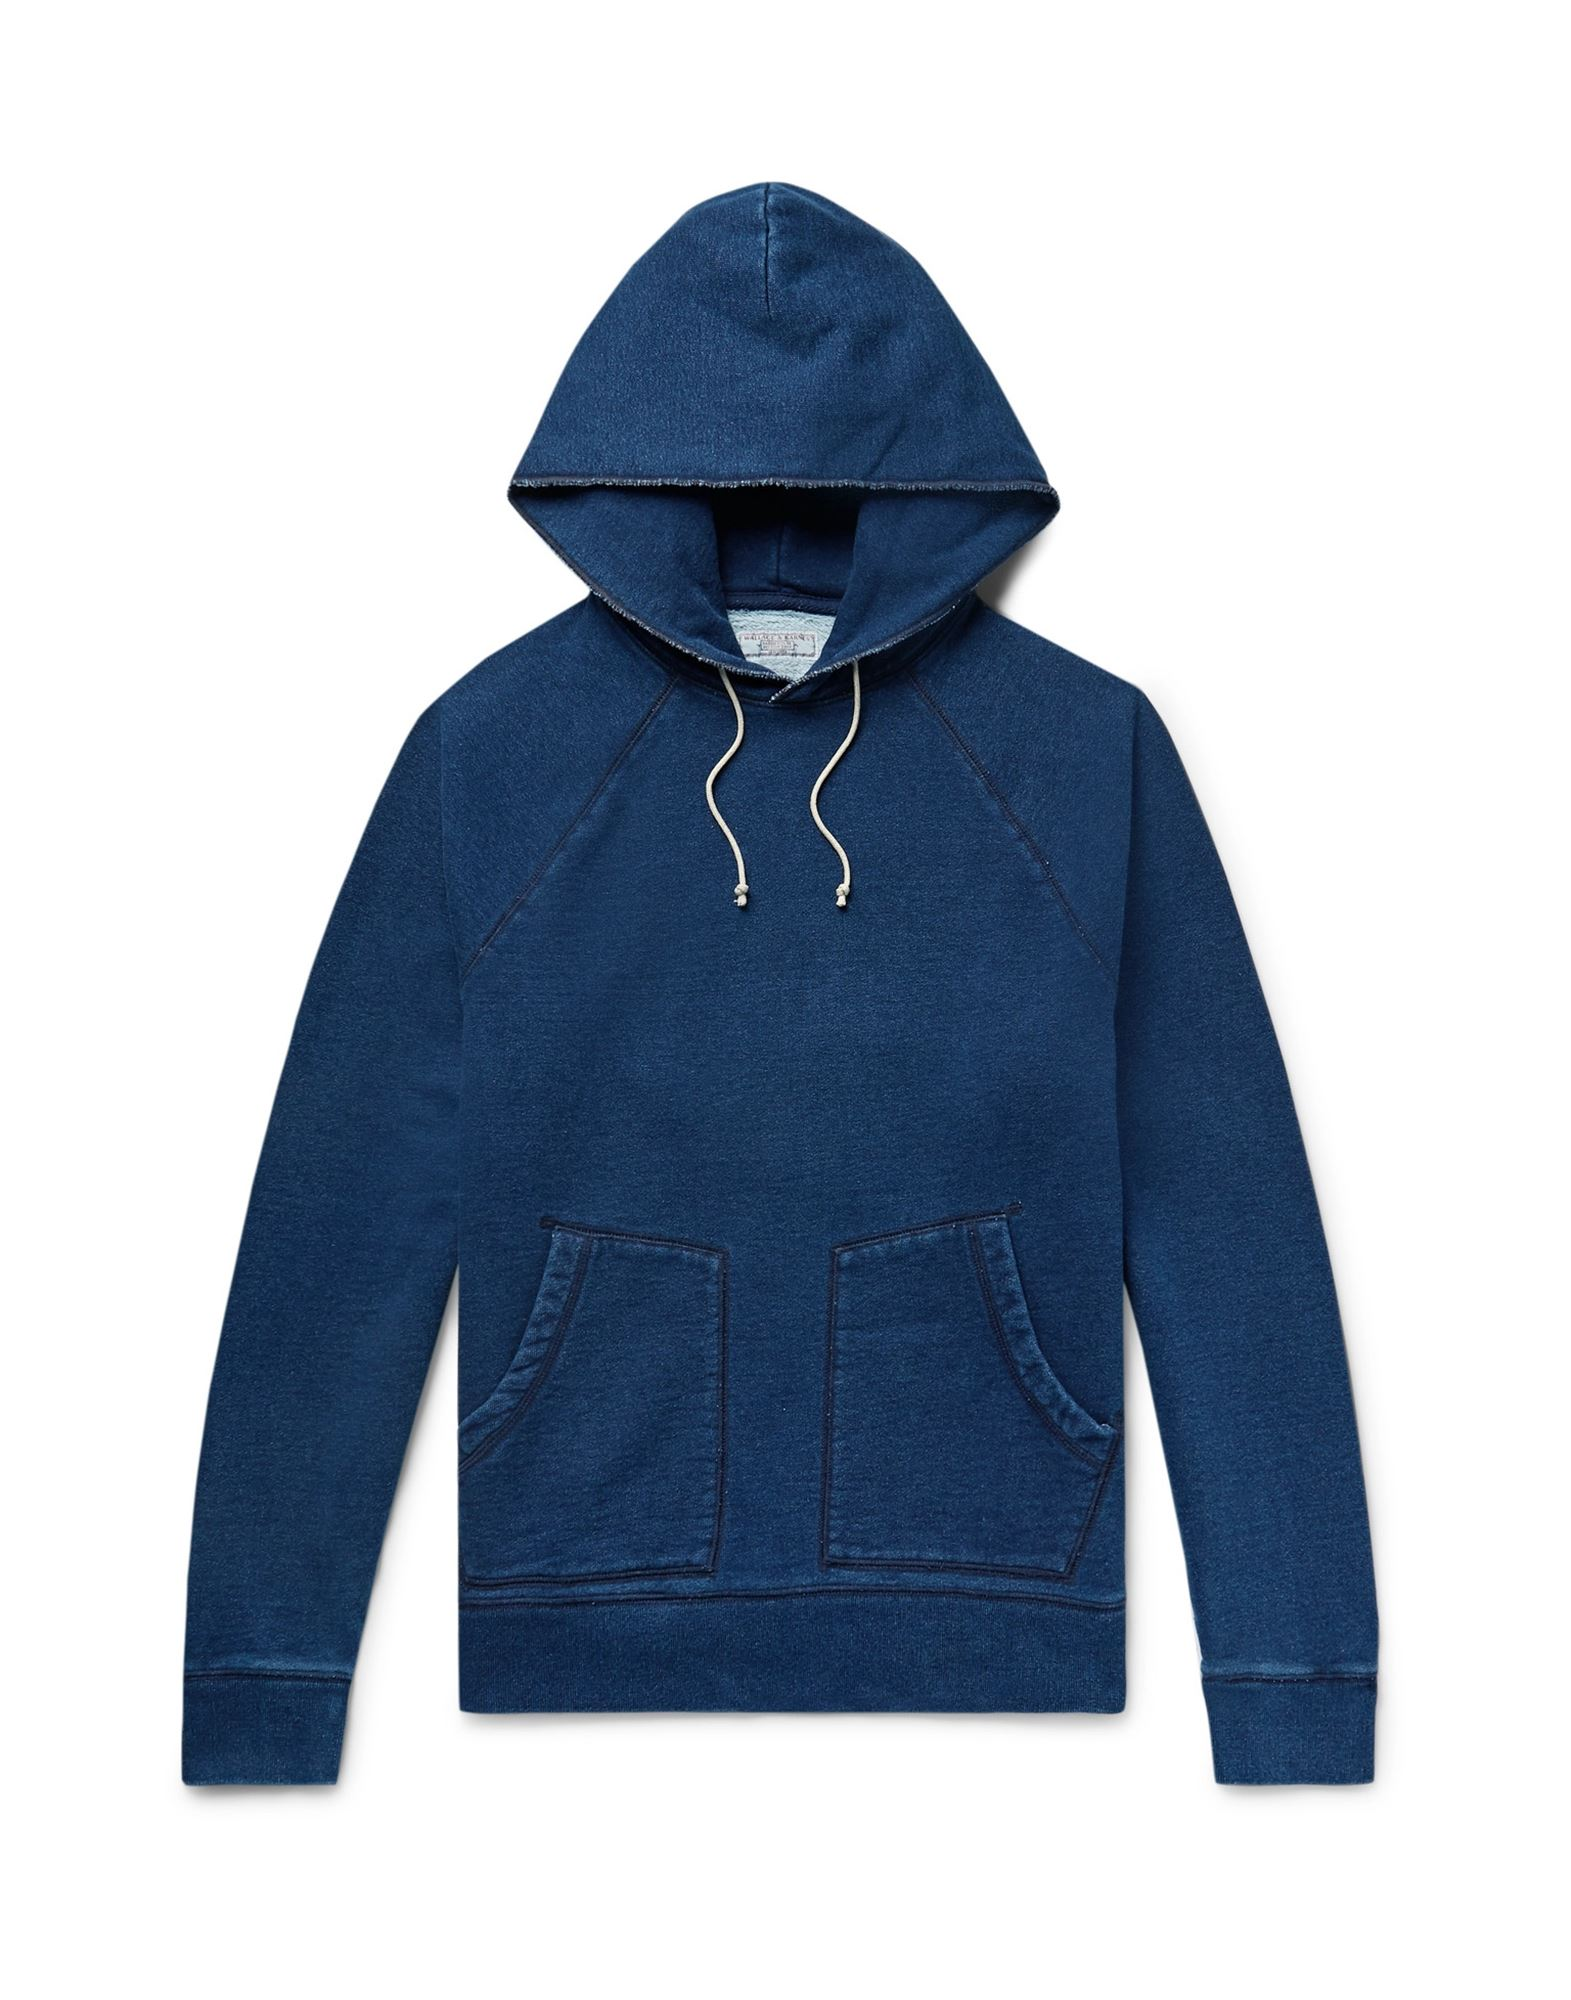 J.CREW Sweatshirts. sweatshirt fleece, no appliqués, solid color, hooded collar, long sleeves, multipockets, french terry lining. 77% Cotton, 23% Polyester